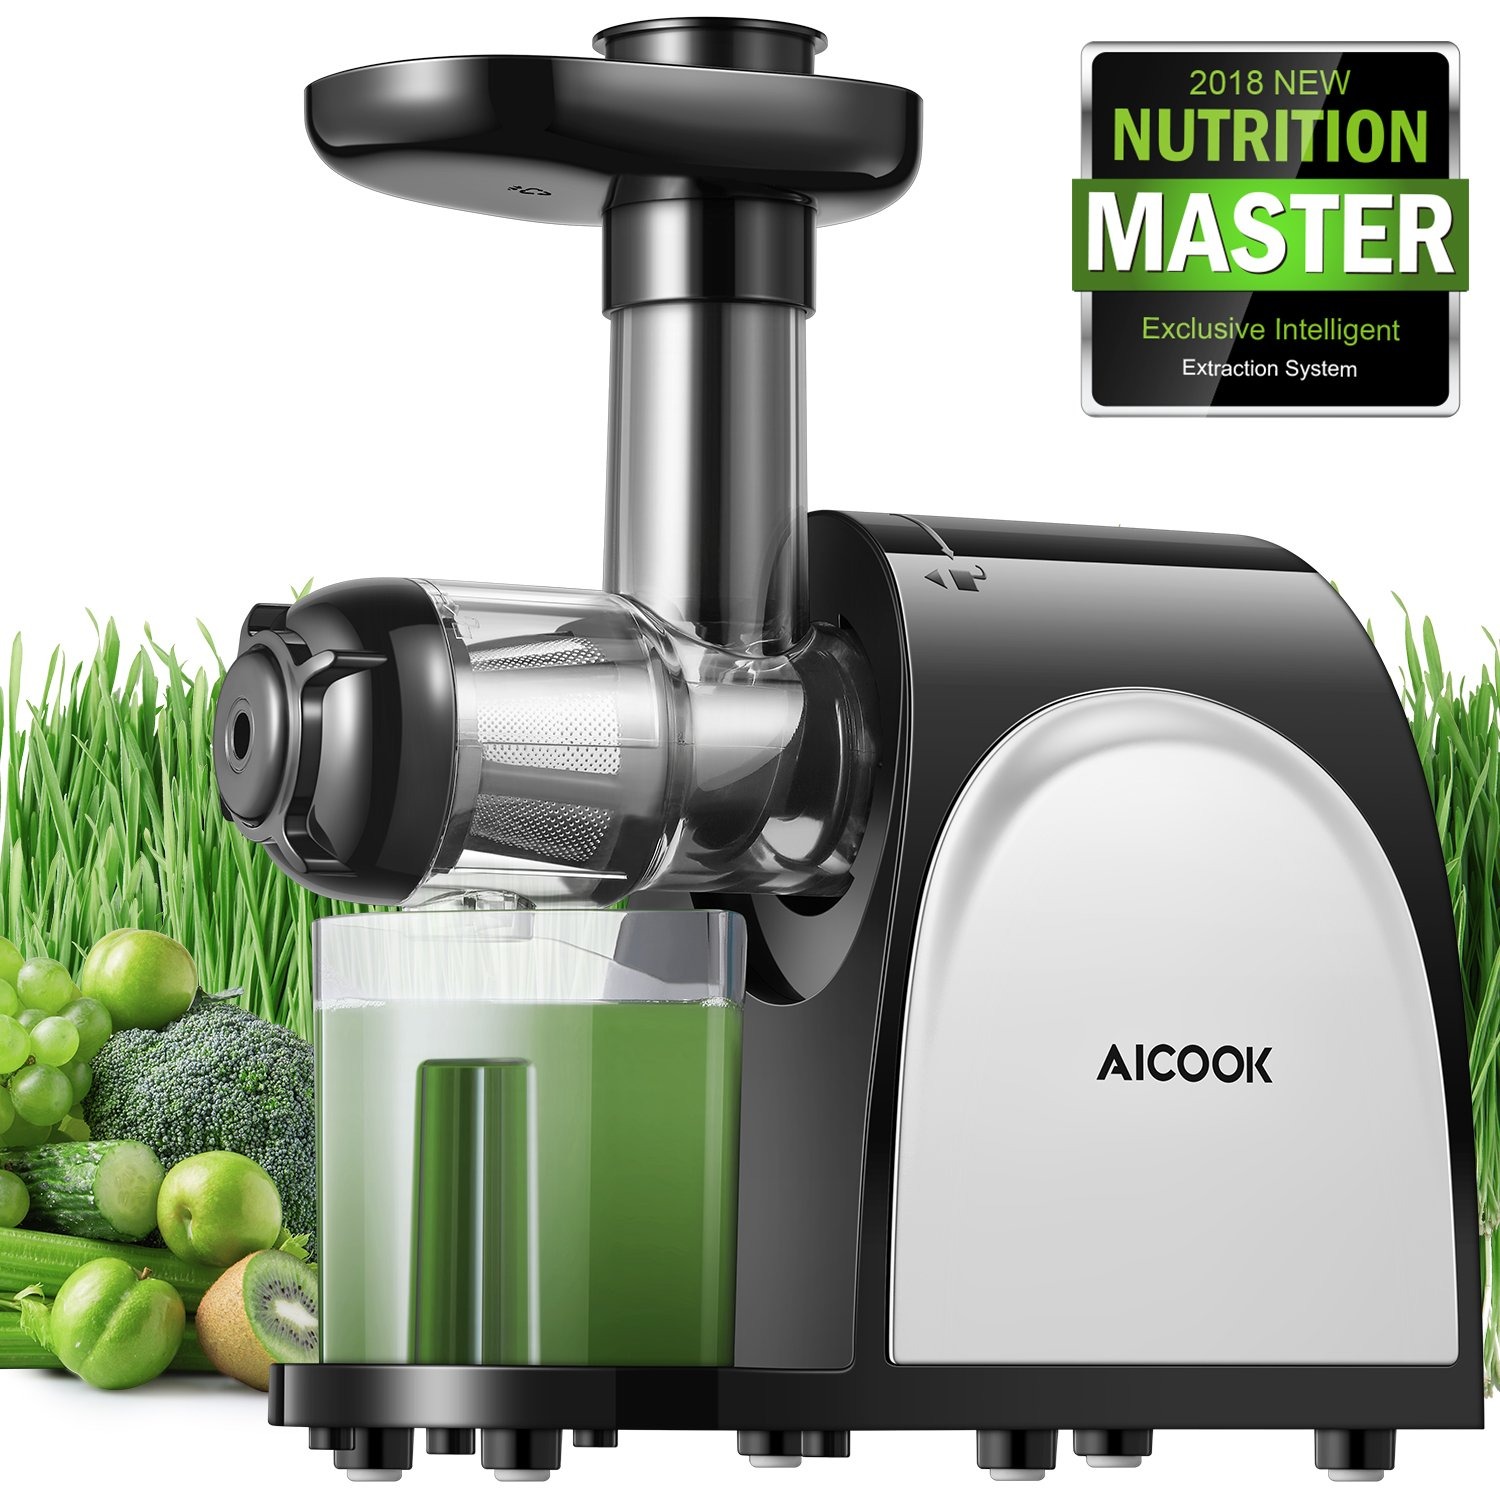 Juicer Masticating Juicer, Aicook Juice Extractor, Cold Press Juicer Machine, Higher Juicer Yield and Drier Pulp, with Quiet Motor and Reverse Function, Easy to Clean with Brush